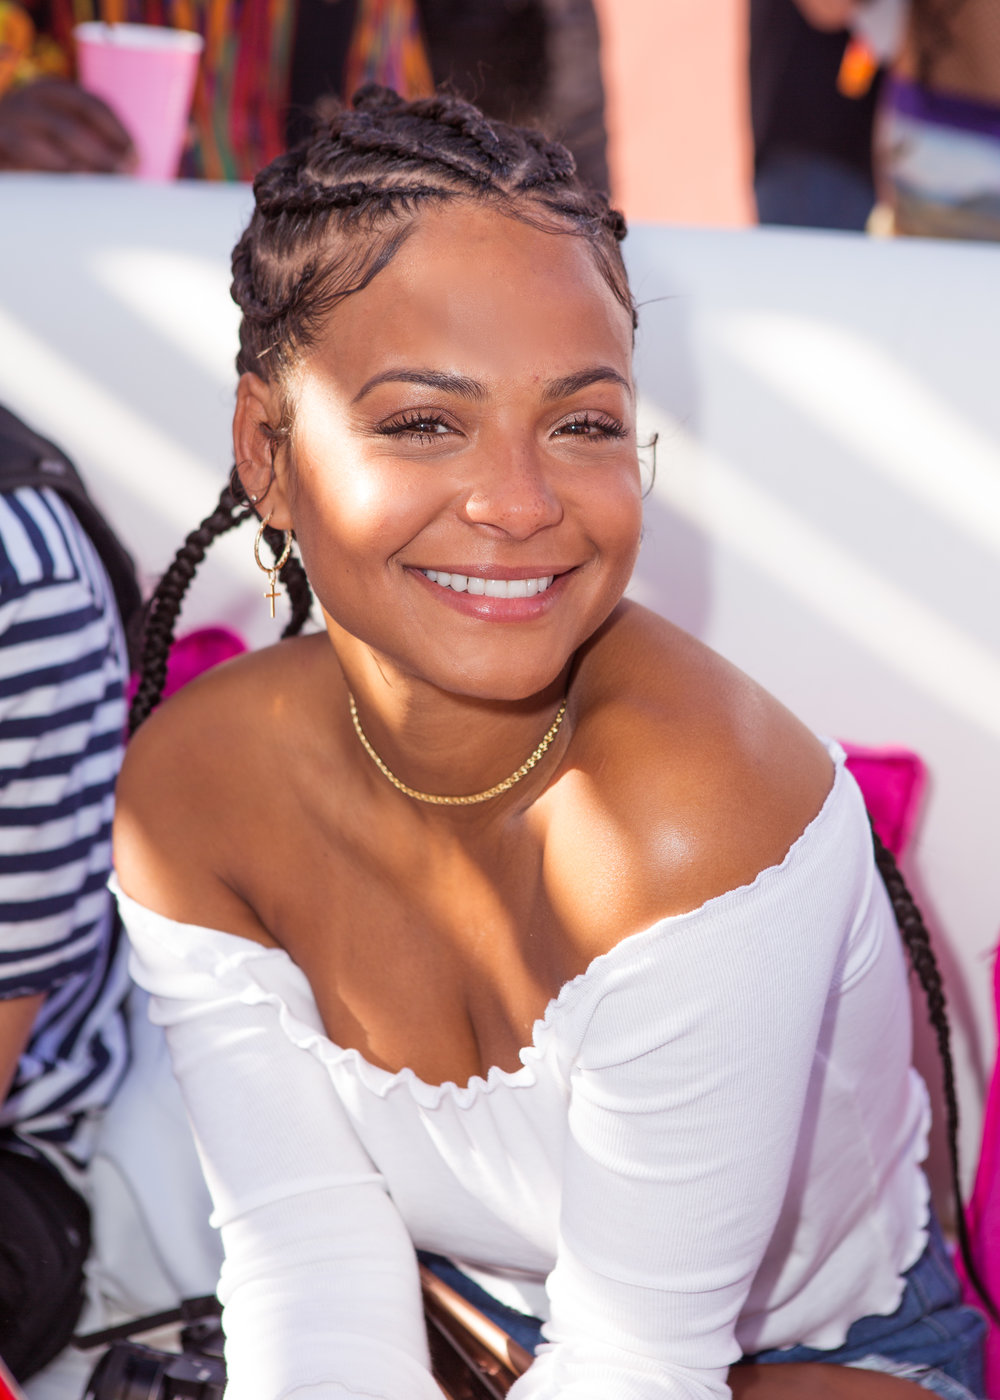 Ultimate Hollywood Coachella Poolside Party christina milian.jpg